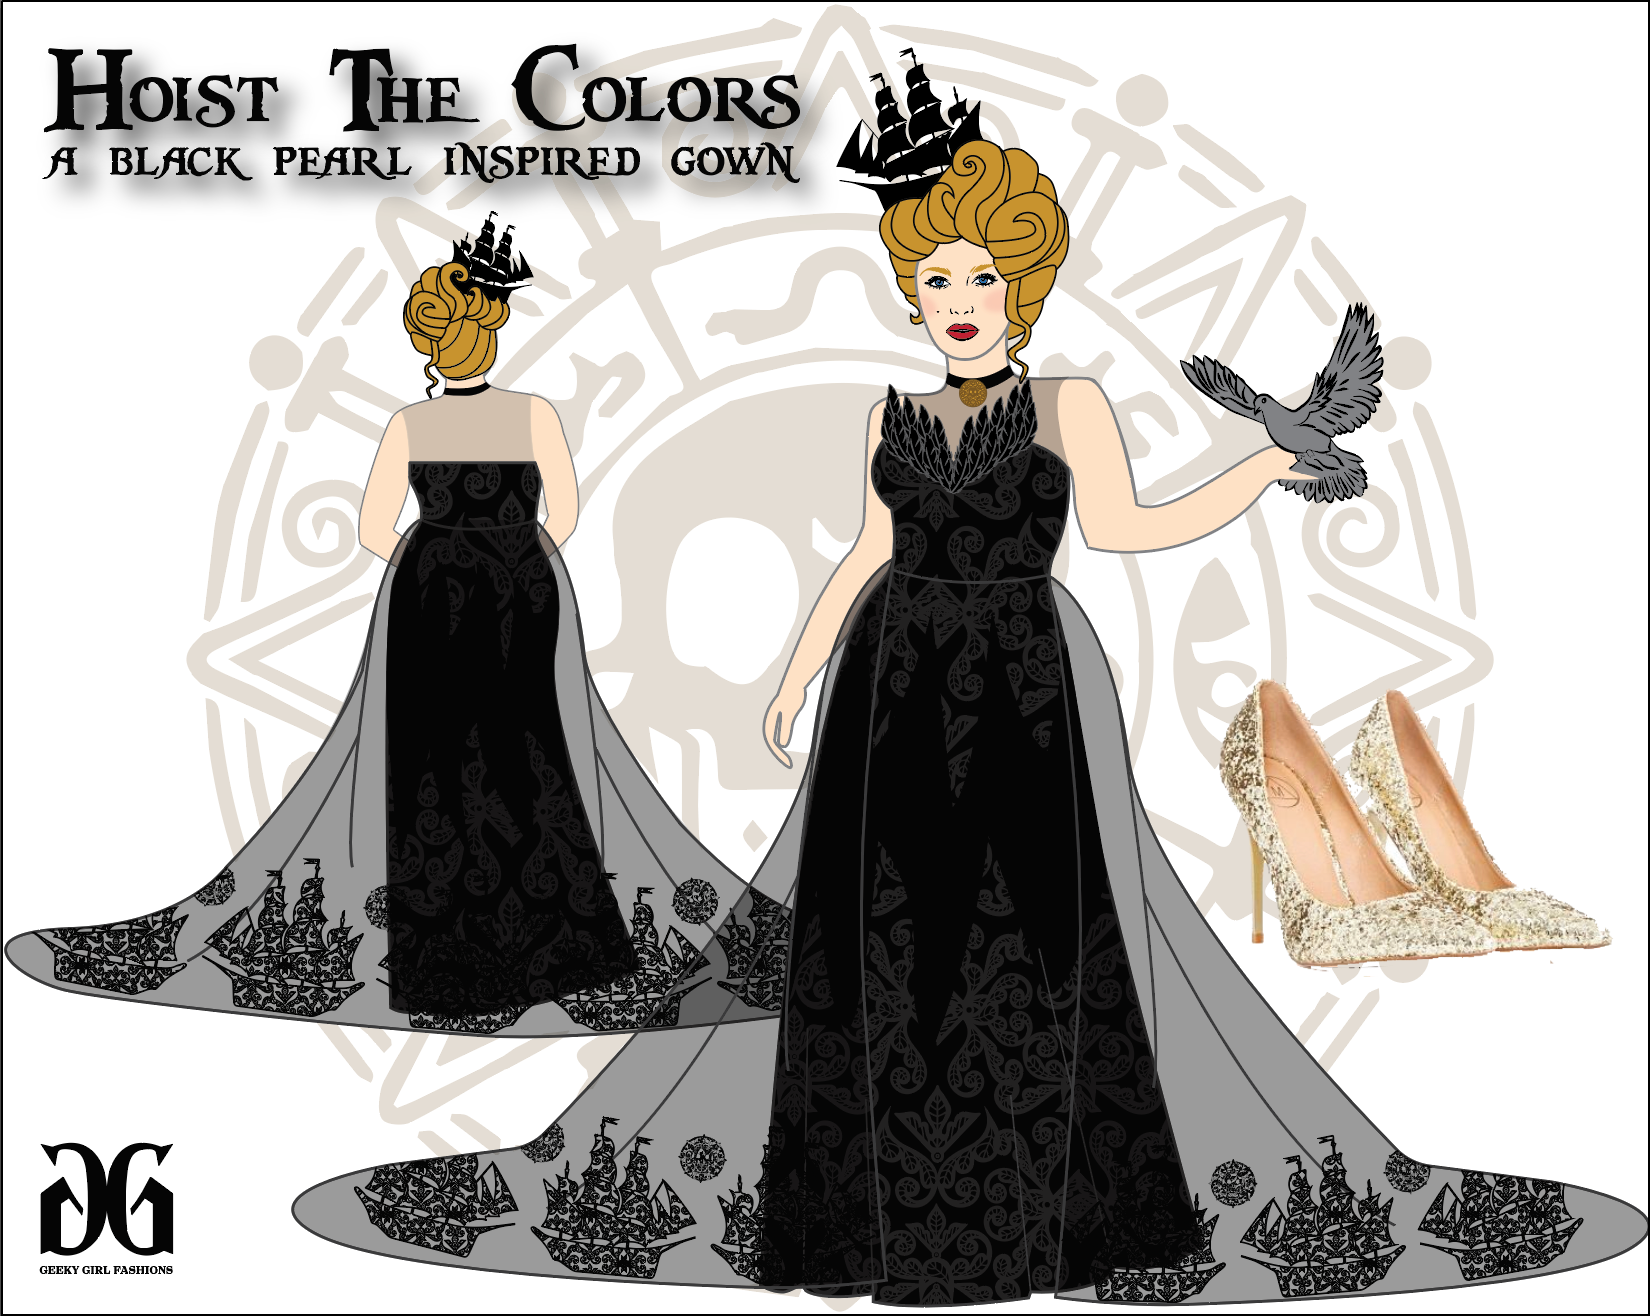 Hoist the Colors inspired by The Black Pearl by Emily Gilmer